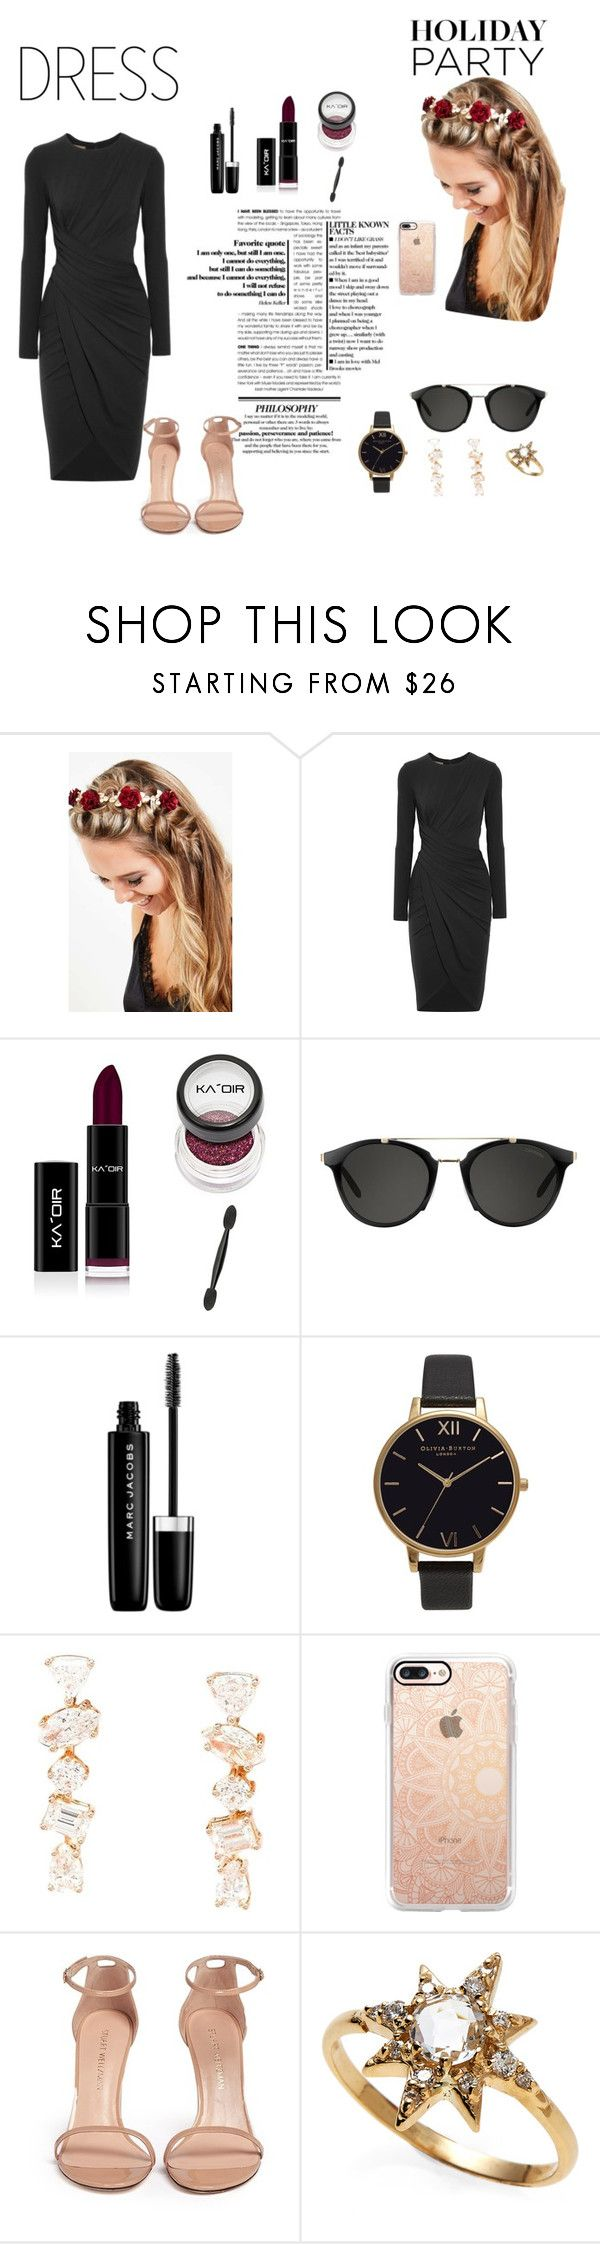 """""""Untitled #2"""" by silviamachado20 ❤ liked on Polyvore featuring Johnny Loves Rosie, Michael Kors, Carrera, Marc Jacobs, Olivia Burton, Kimberly McDonald, Casetify, Stuart Weitzman and Anzie"""